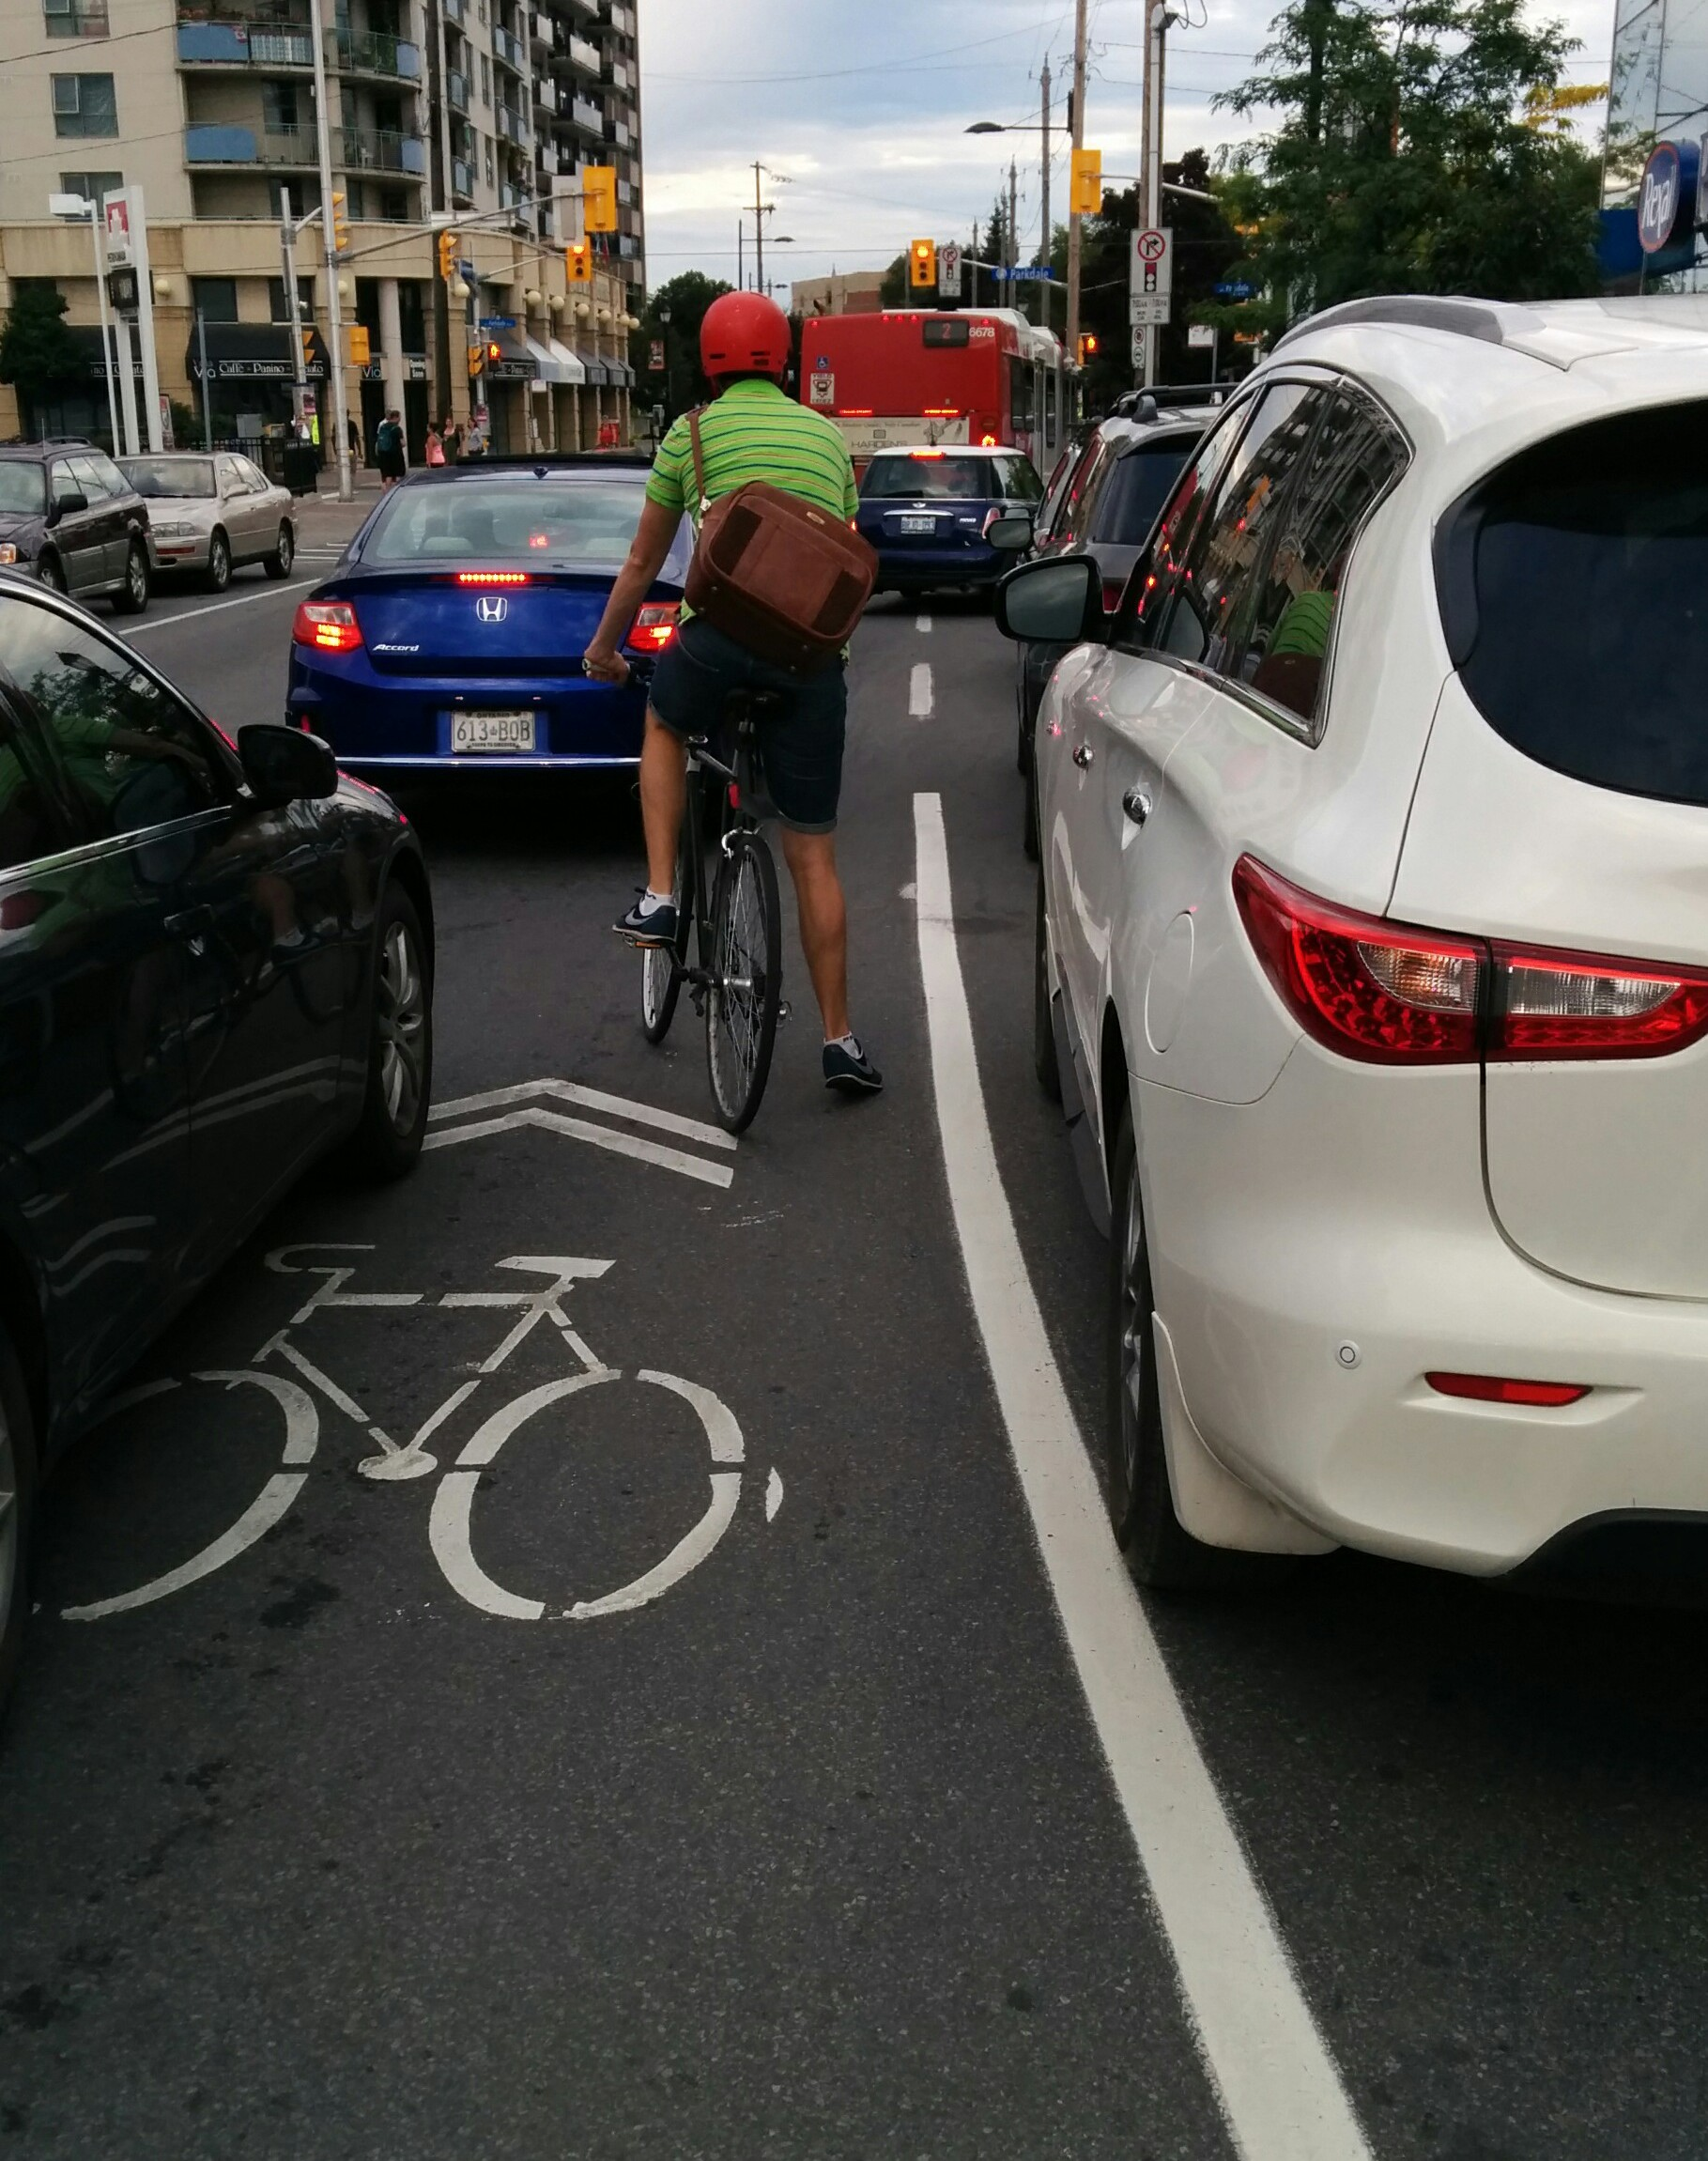 As you can see the area is very congested during rush hour forcing cars bikes buses and trucks to all share a narrow roadway. & Anatomy of A Near-Dooring (part 1) u2013 The Ottawa Cyclist